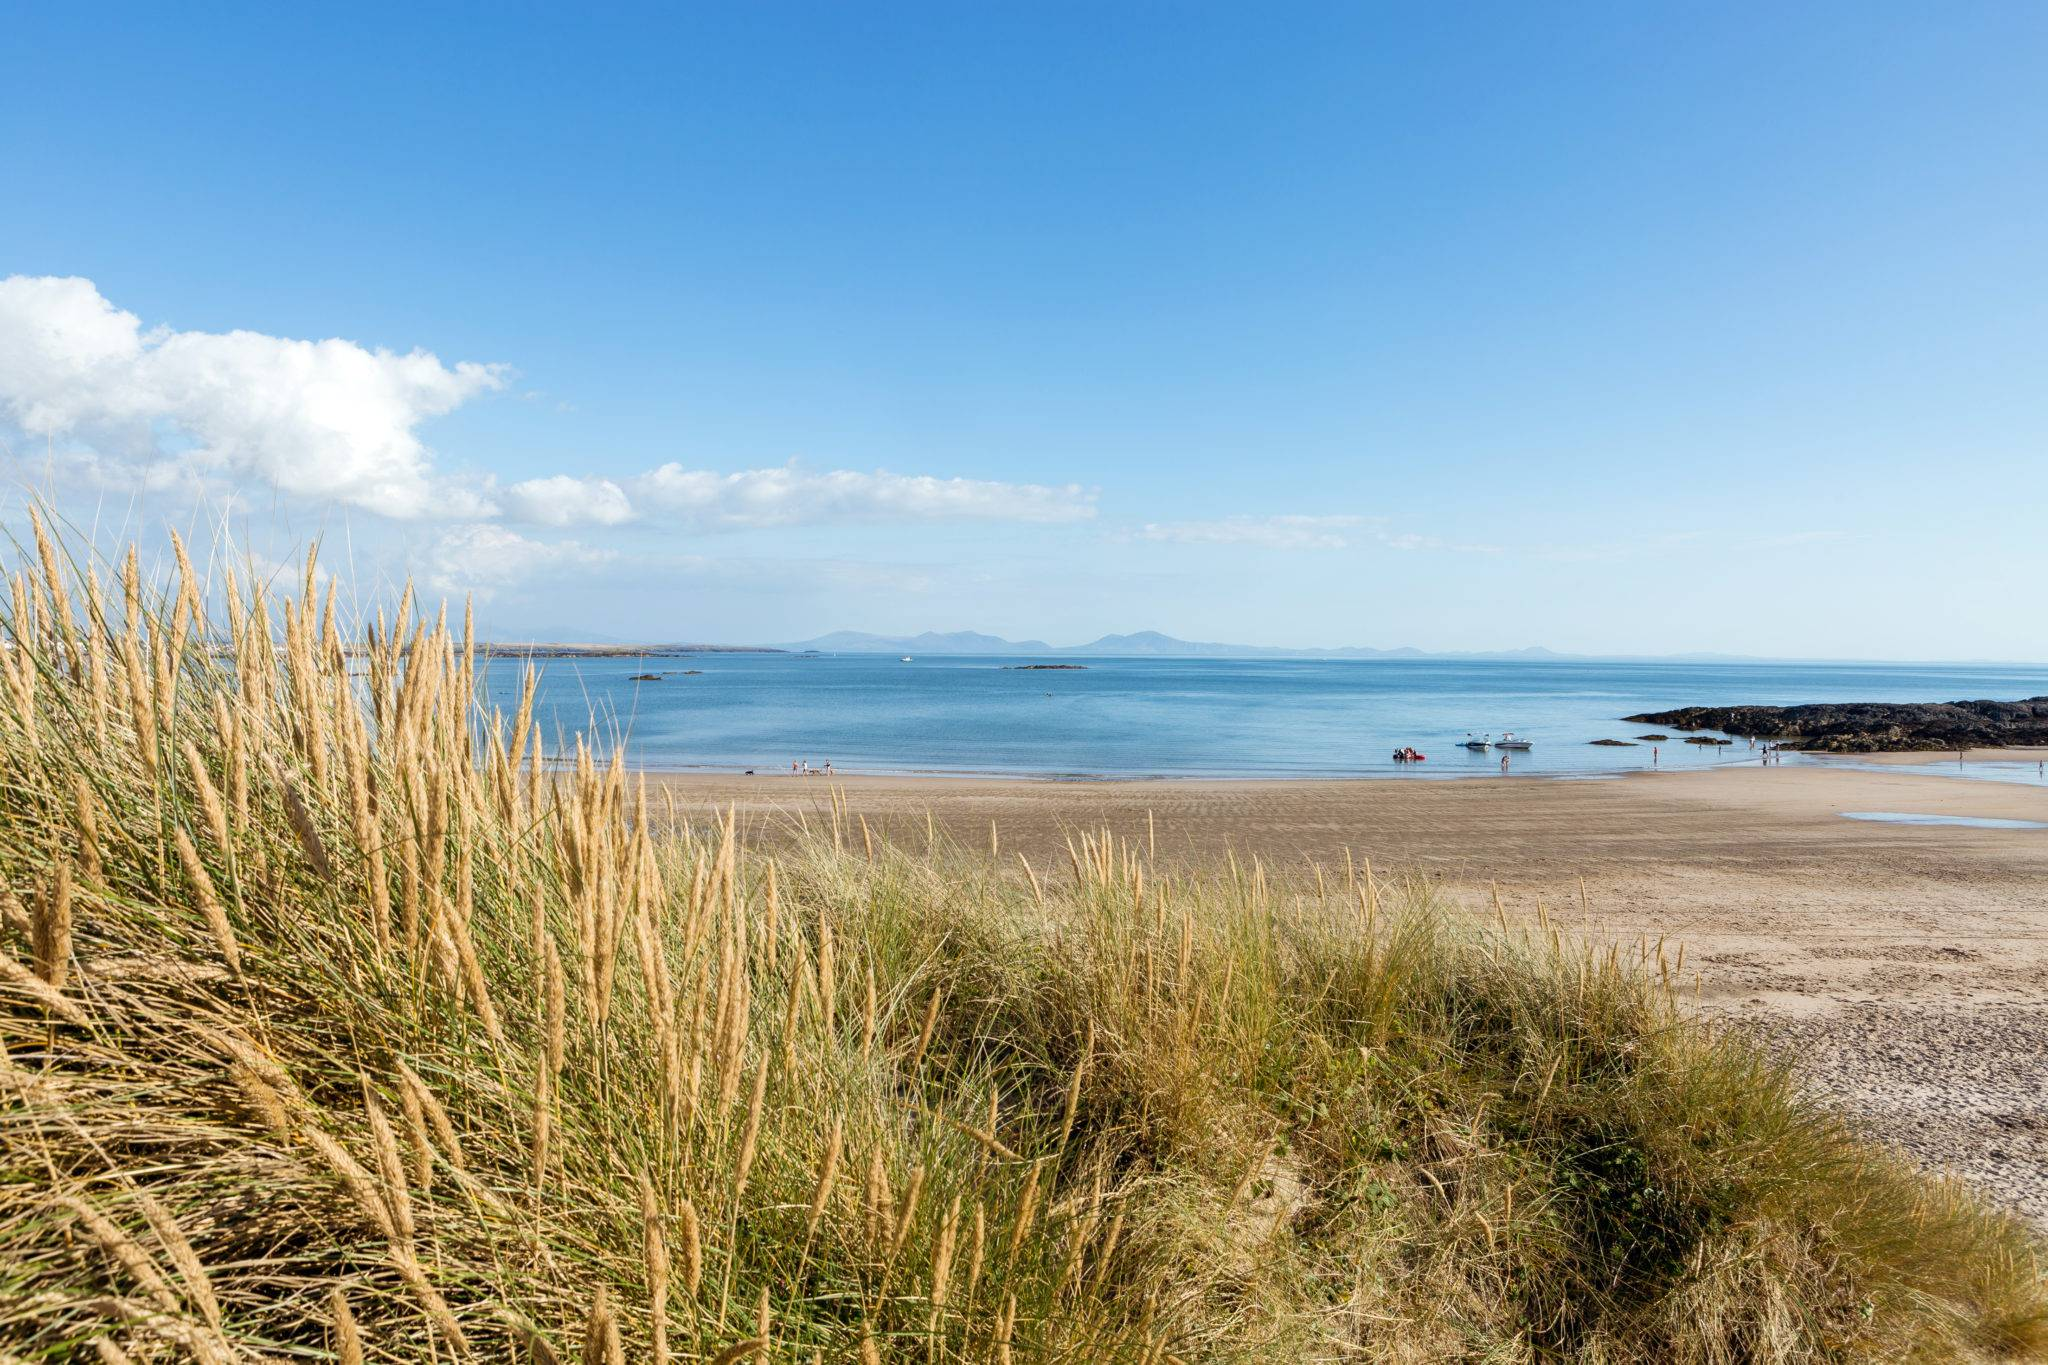 https://silverbay.co.uk/wp-content/uploads/2016/12/silver-bay-holiday-village-anglesey-beach-summer-grass-ocean.jpg